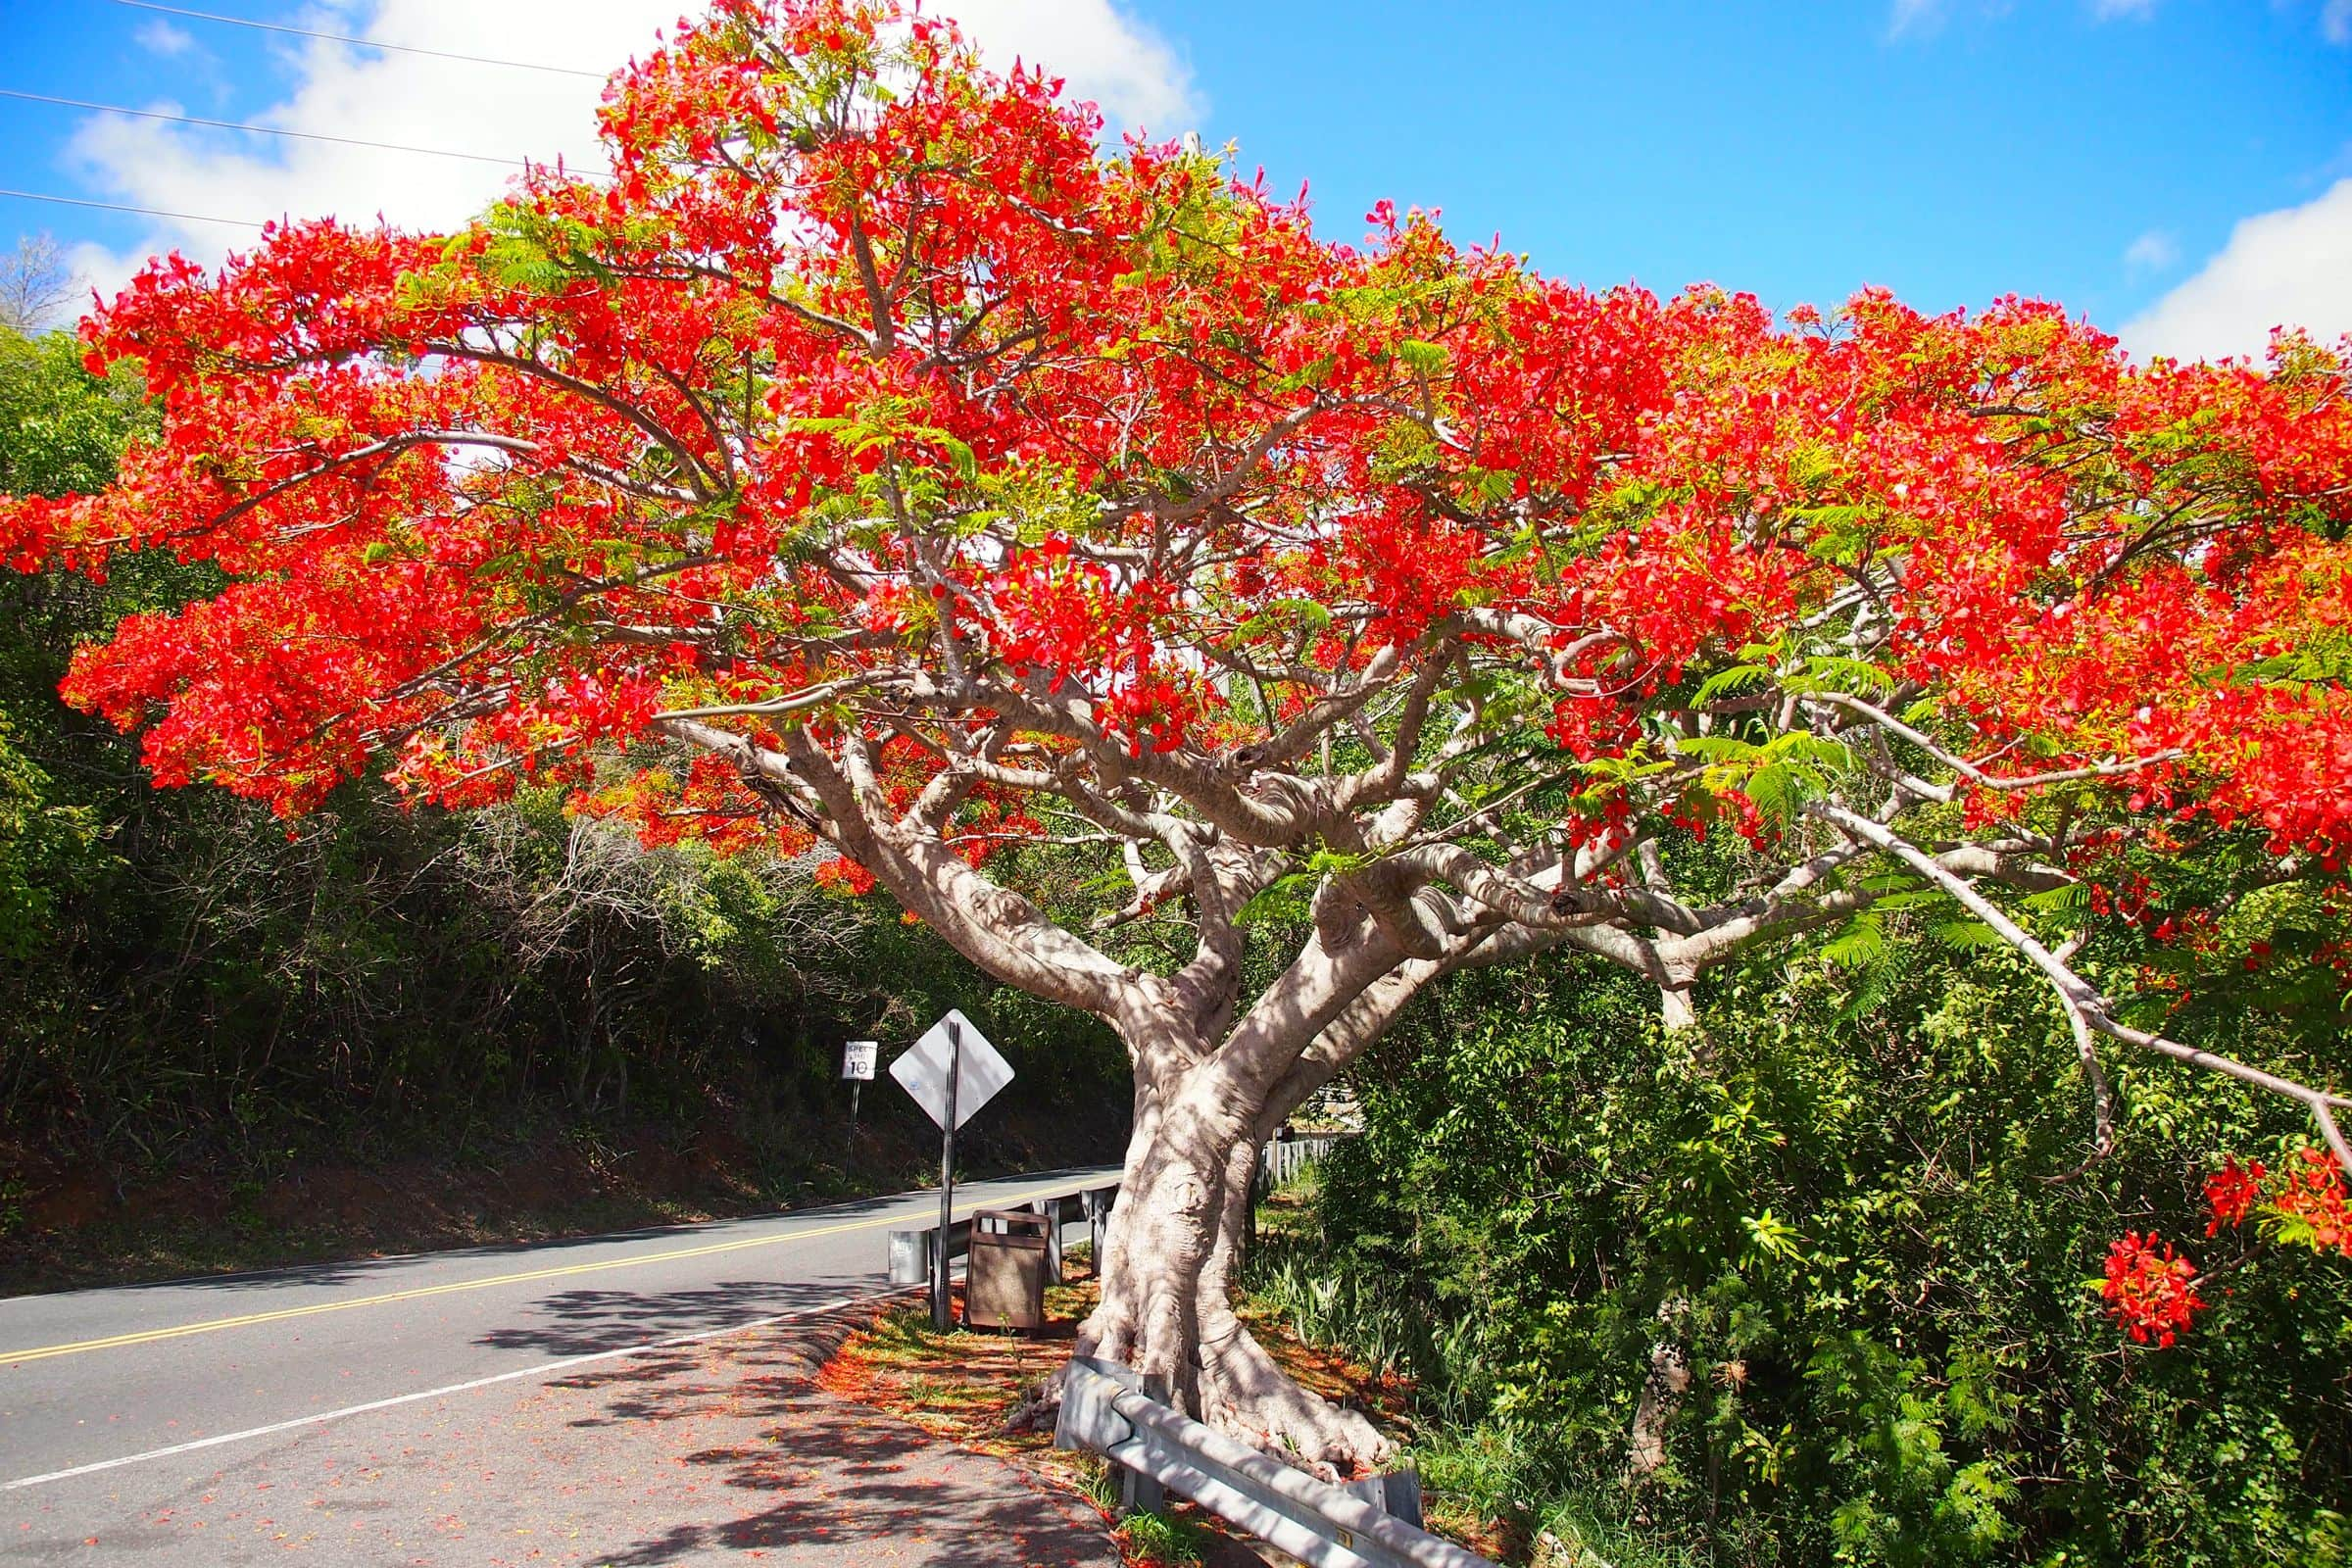 Flamboyant tree in full bloom